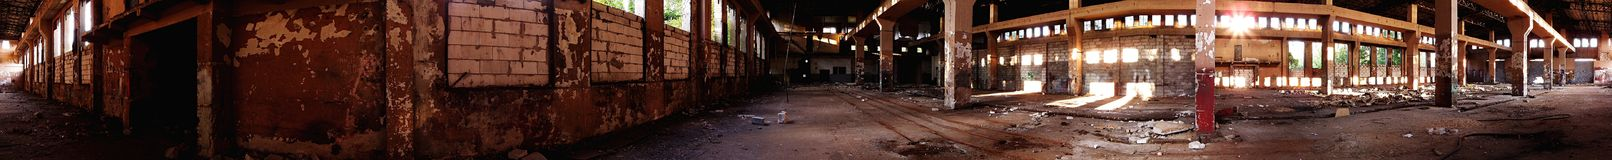 Old Ruined Hall. Panorama of old ruined train repair station royalty free stock images